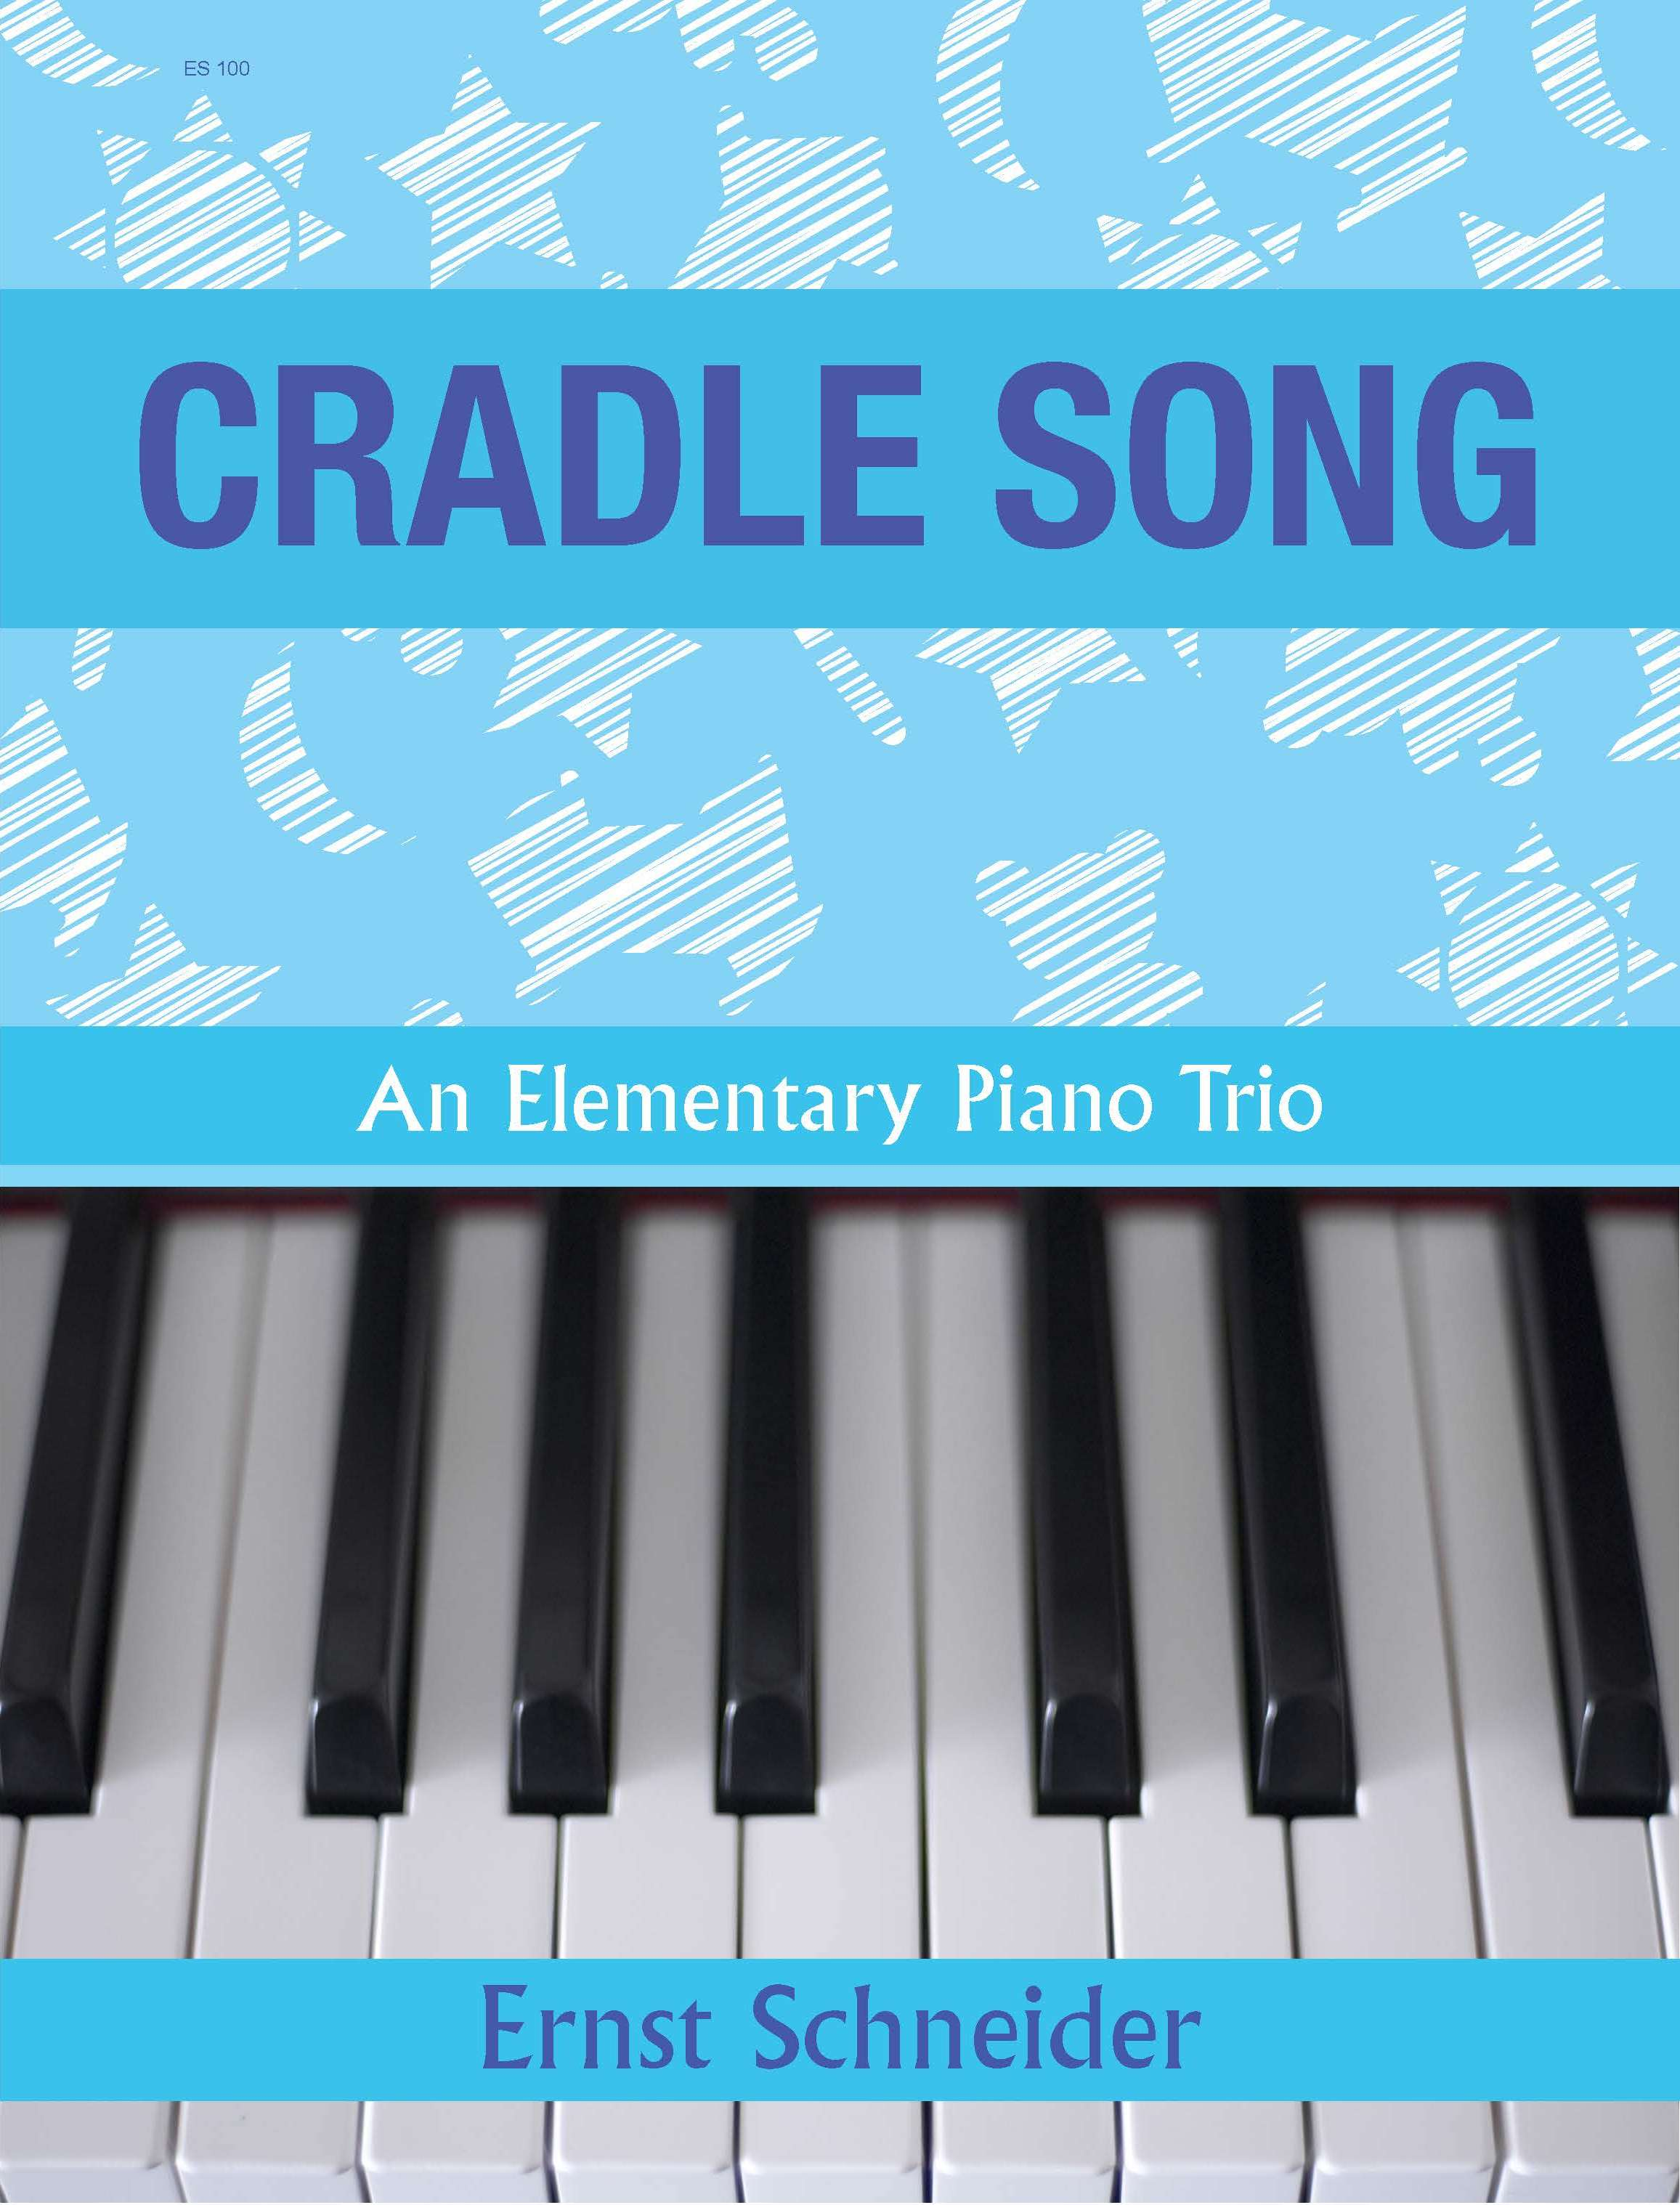 a cradle song